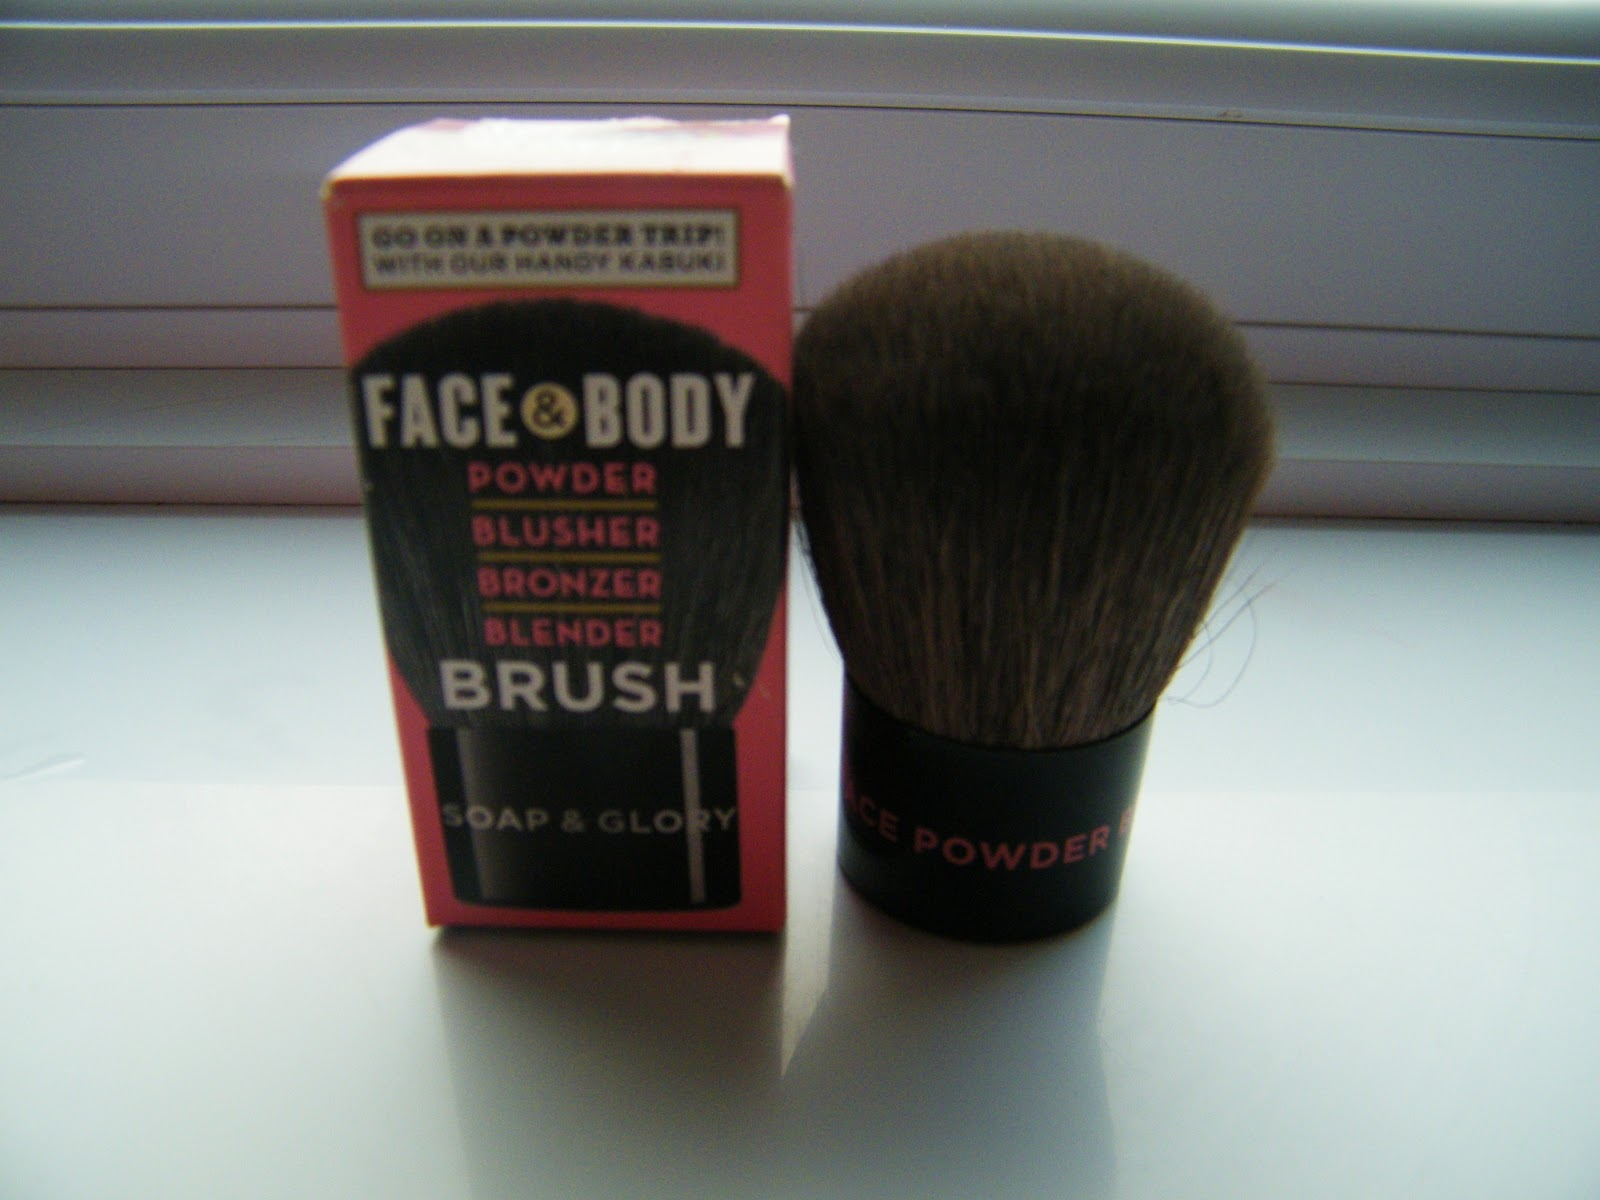 Soap and Glory Face & Body Powder Brush